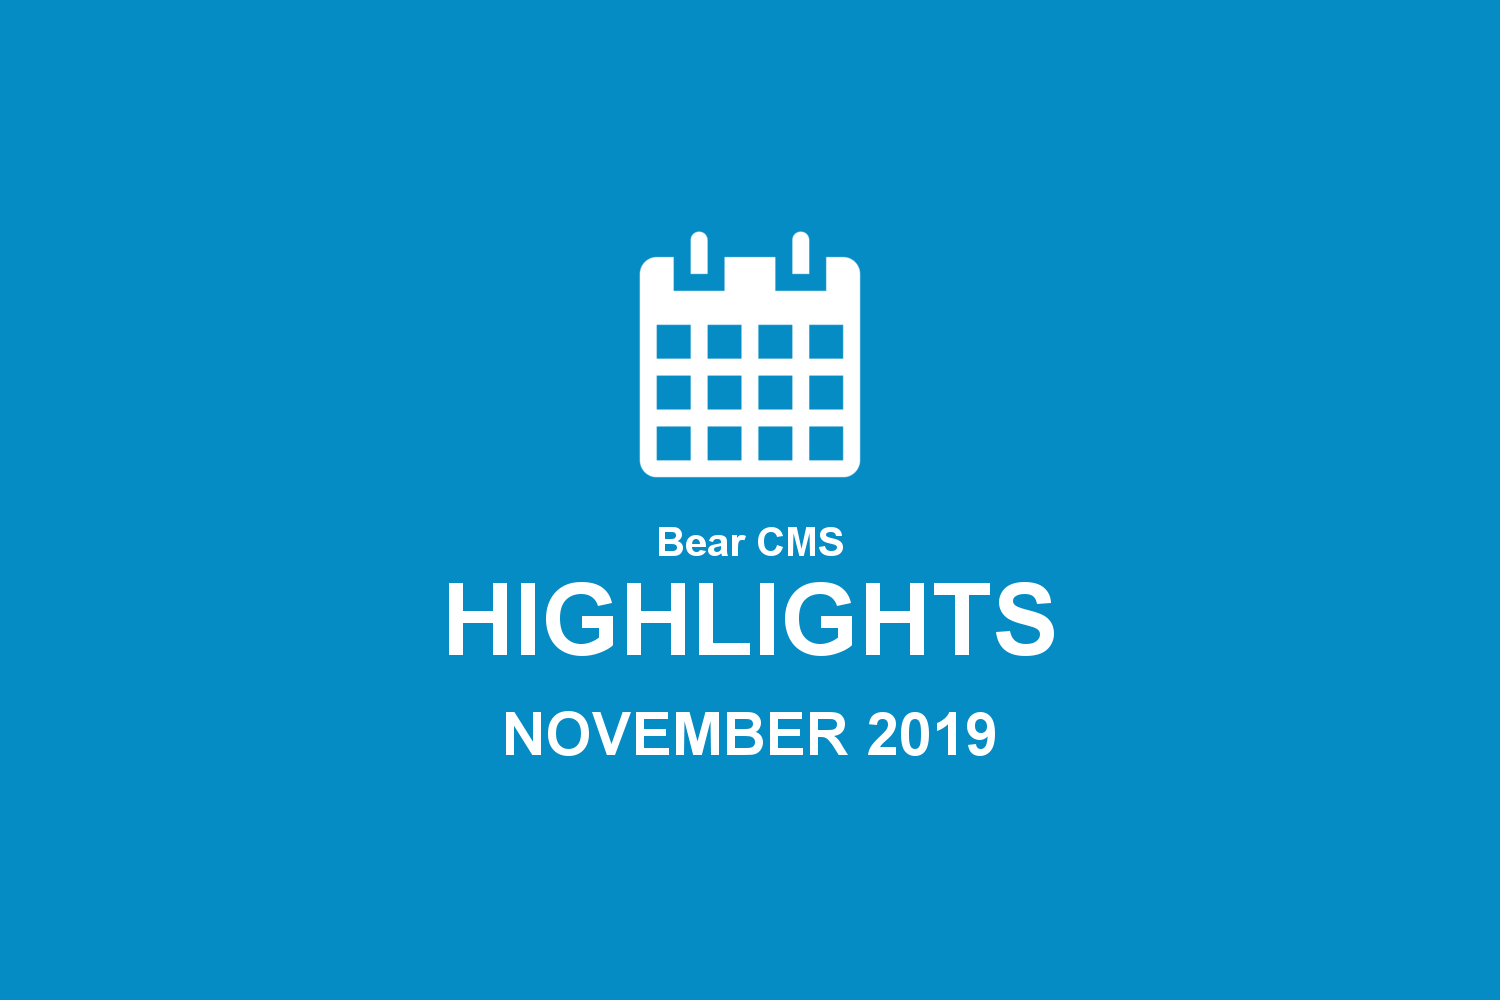 Bear CMS highlights (November 2019)